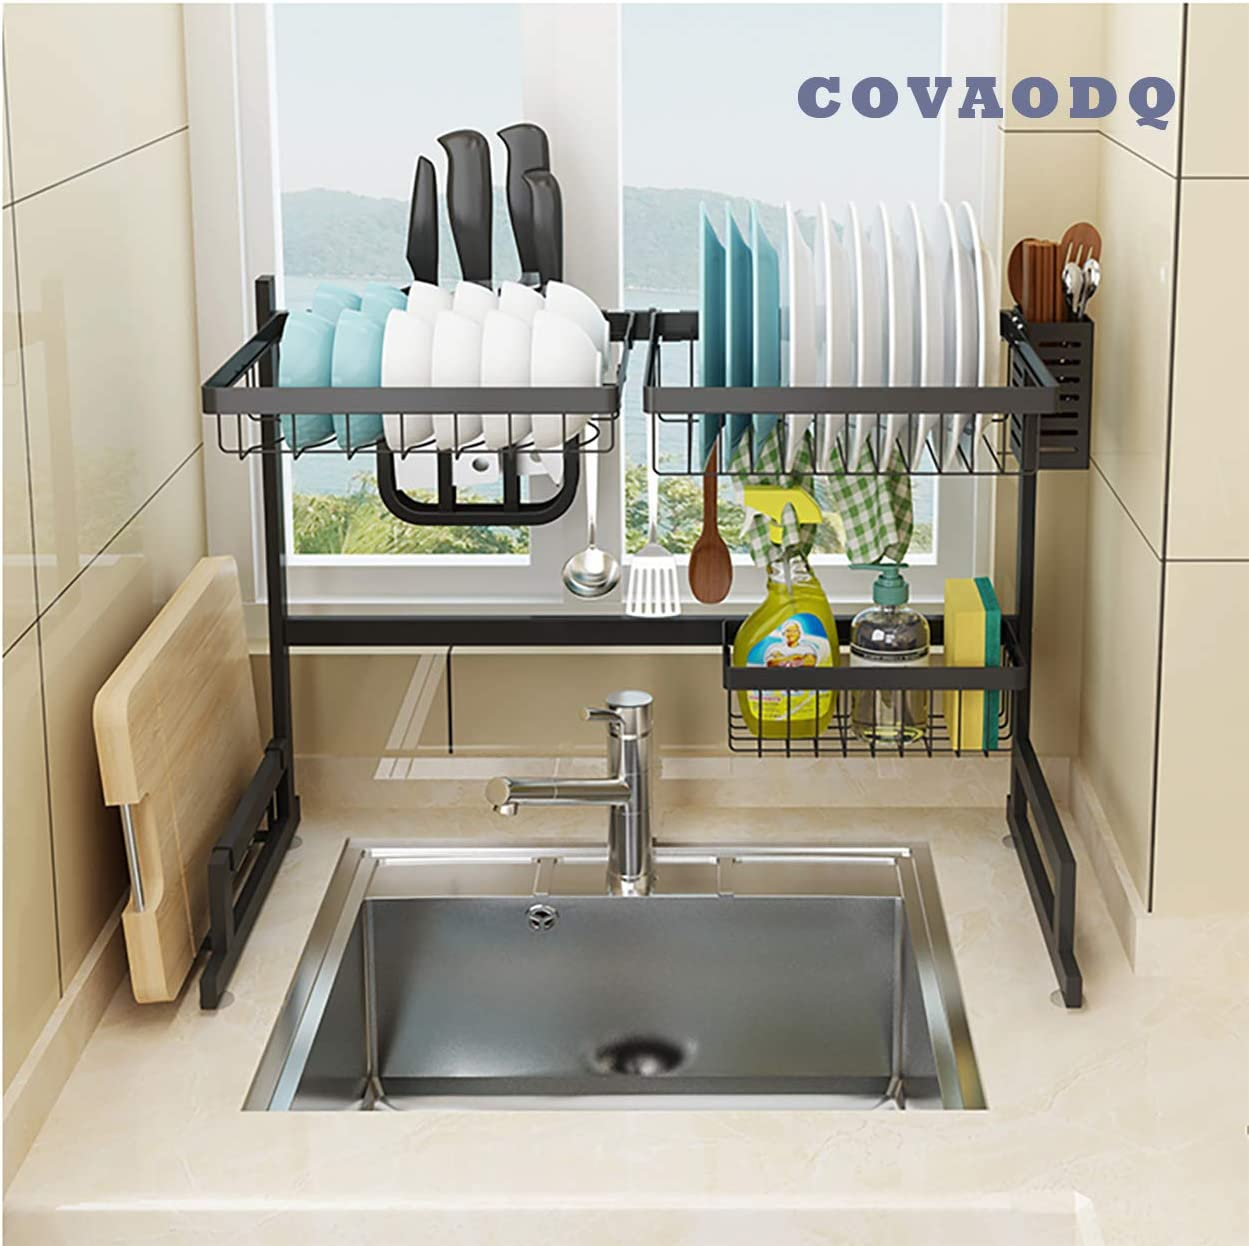 Amazon Com Covaodq Dish Drying Rack Over Sink Drainer Shelf For Kitchen Drying Rack Organizer Supplies Storage Counter Kitchen Space Saver Utensils Holder Stainless Steel Sink Size 24 1 2 Inch Black